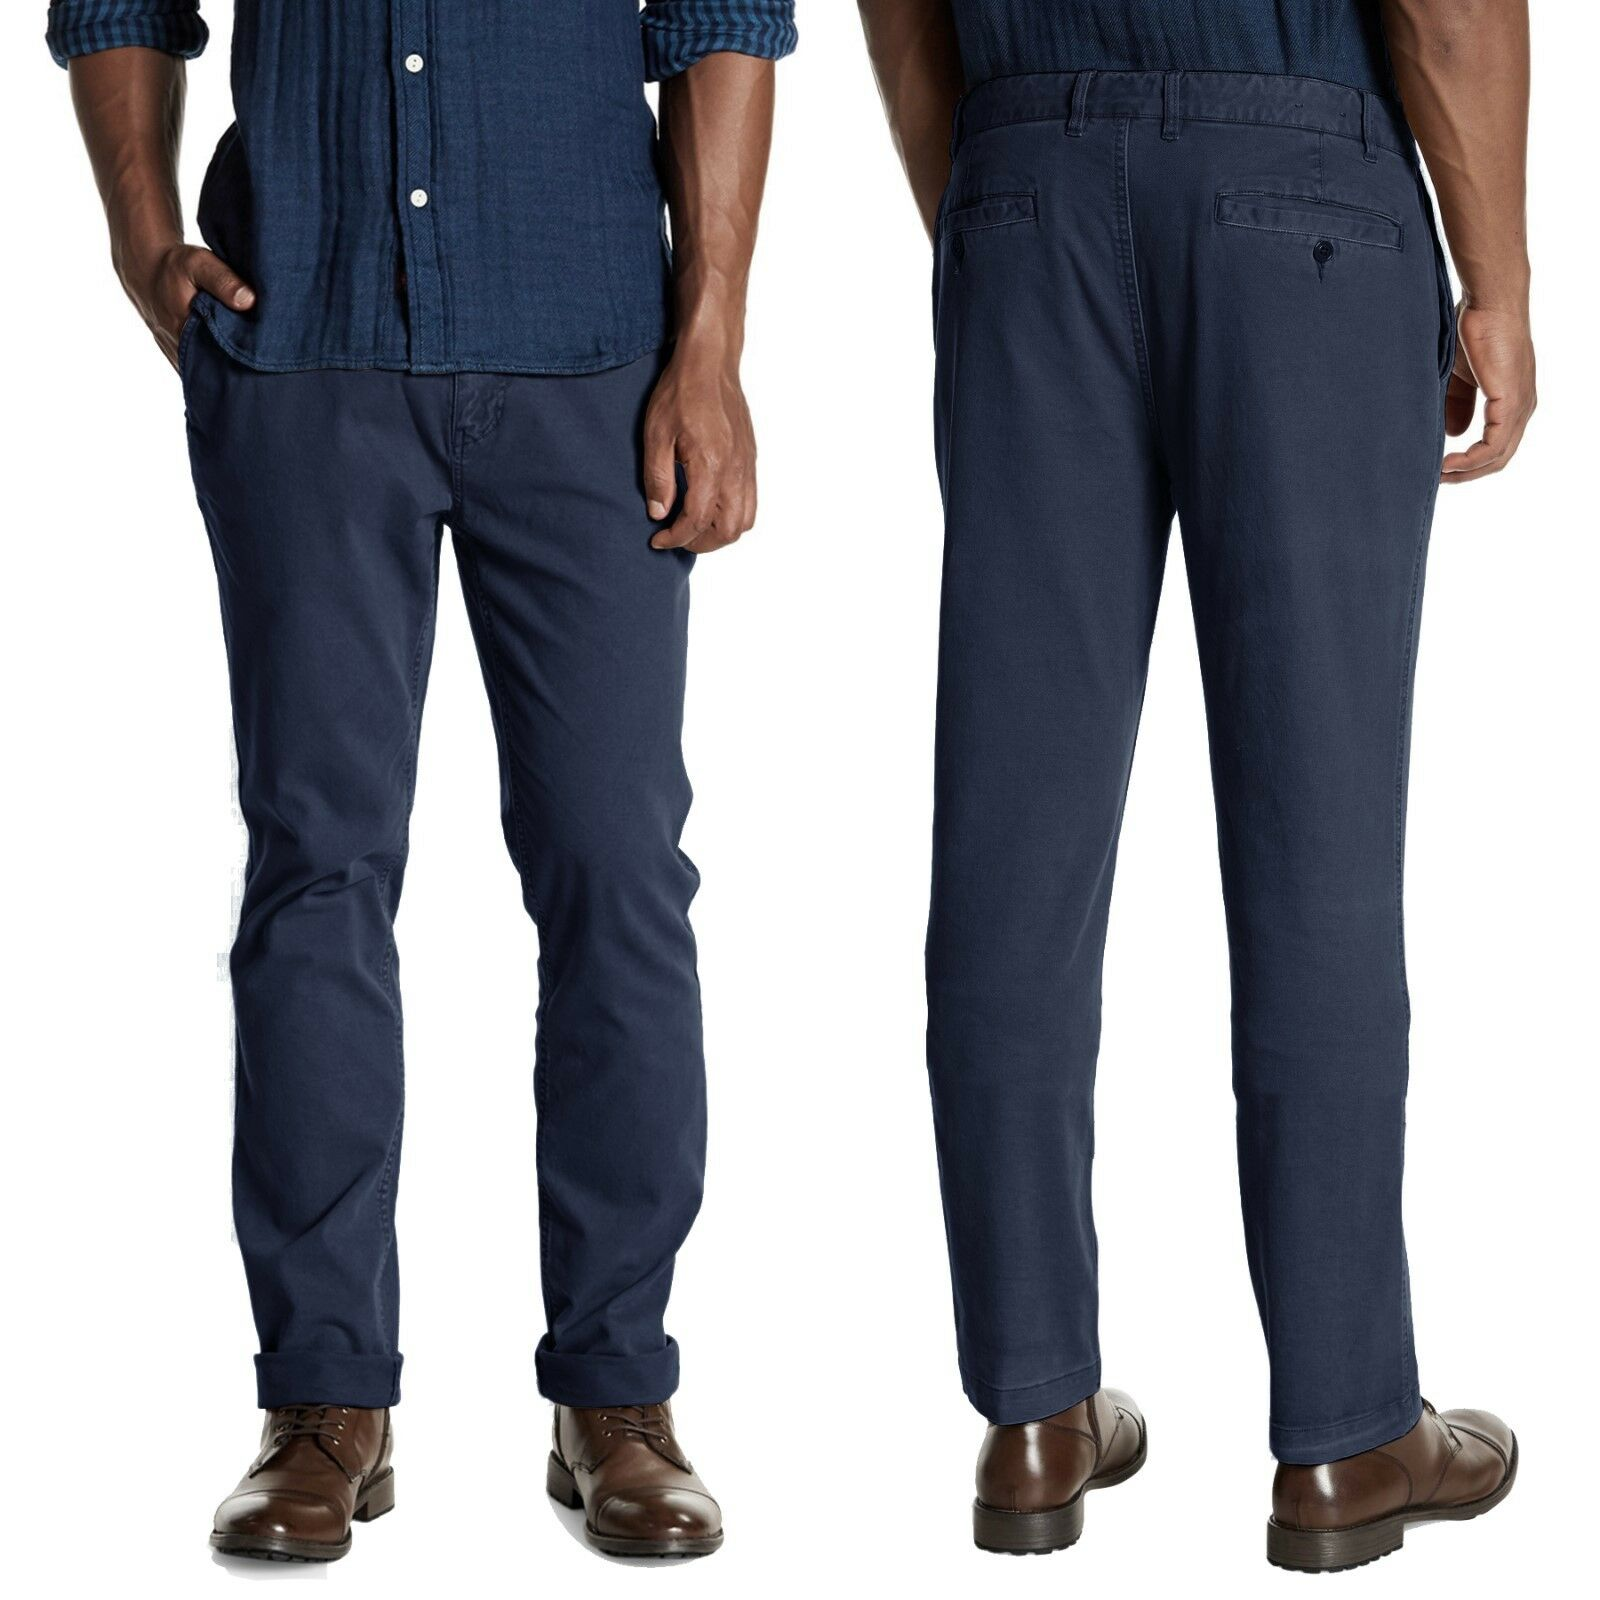 FAHERTY Comfort Canvas Trouser Pants Garment Dyed in Navy 38x34 NWT